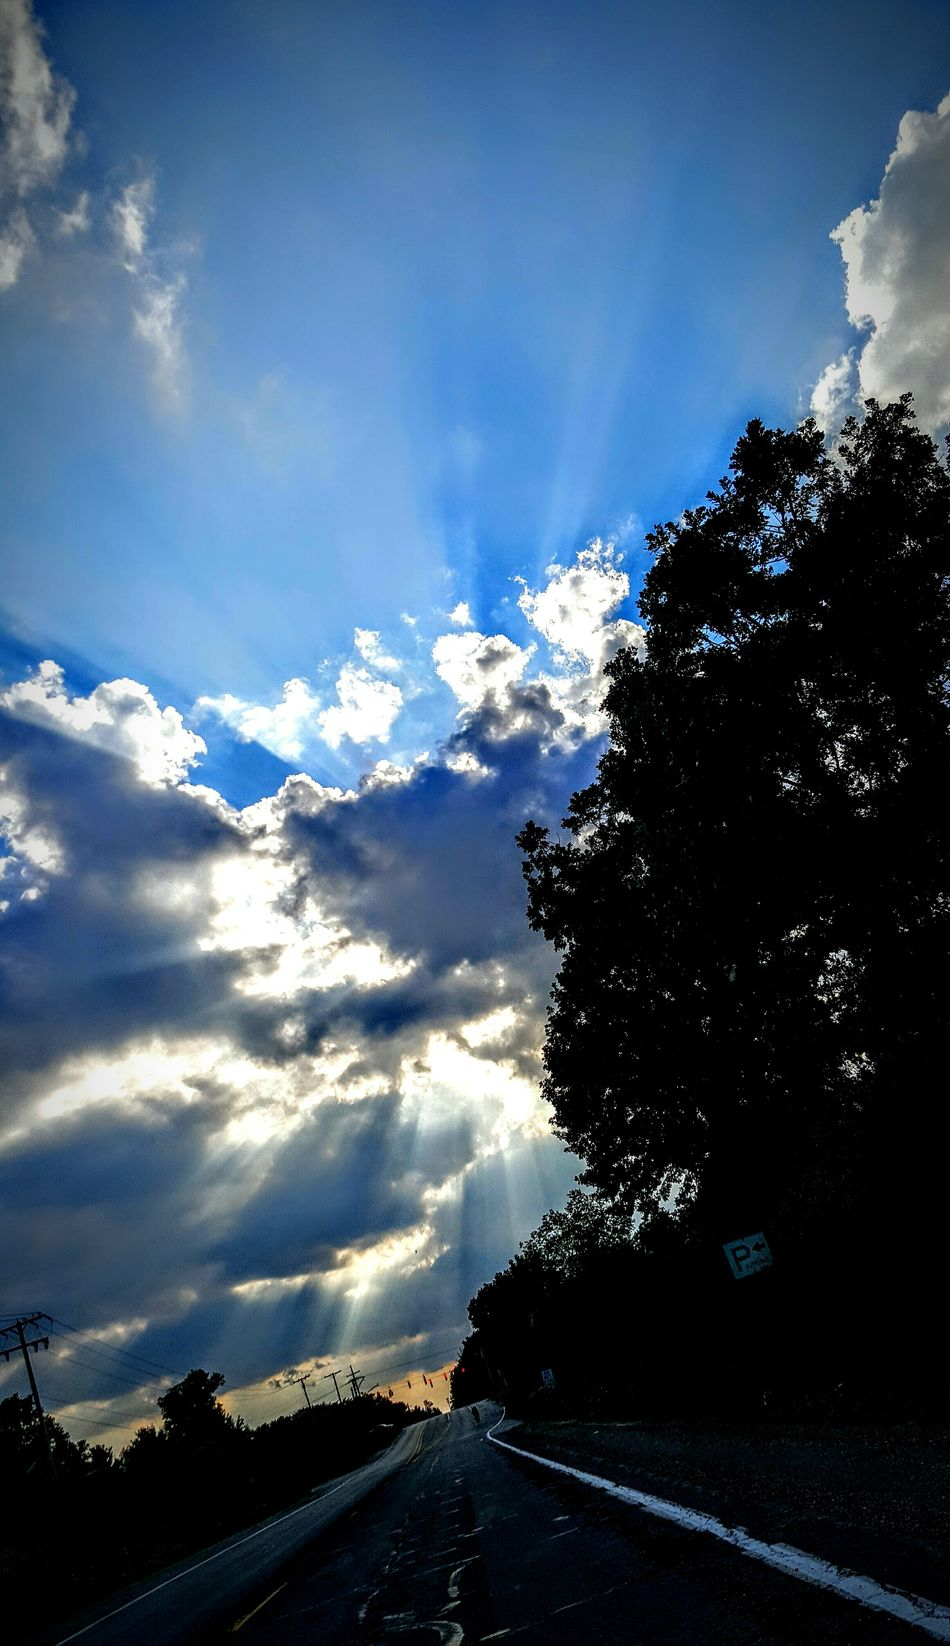 TakeoverContrast No Filter Calming Clouds And Sky Sun Through Trees Sun Through Clouds Person On Road Beautiful Sky Heavens Light Michigan Michigan Skies